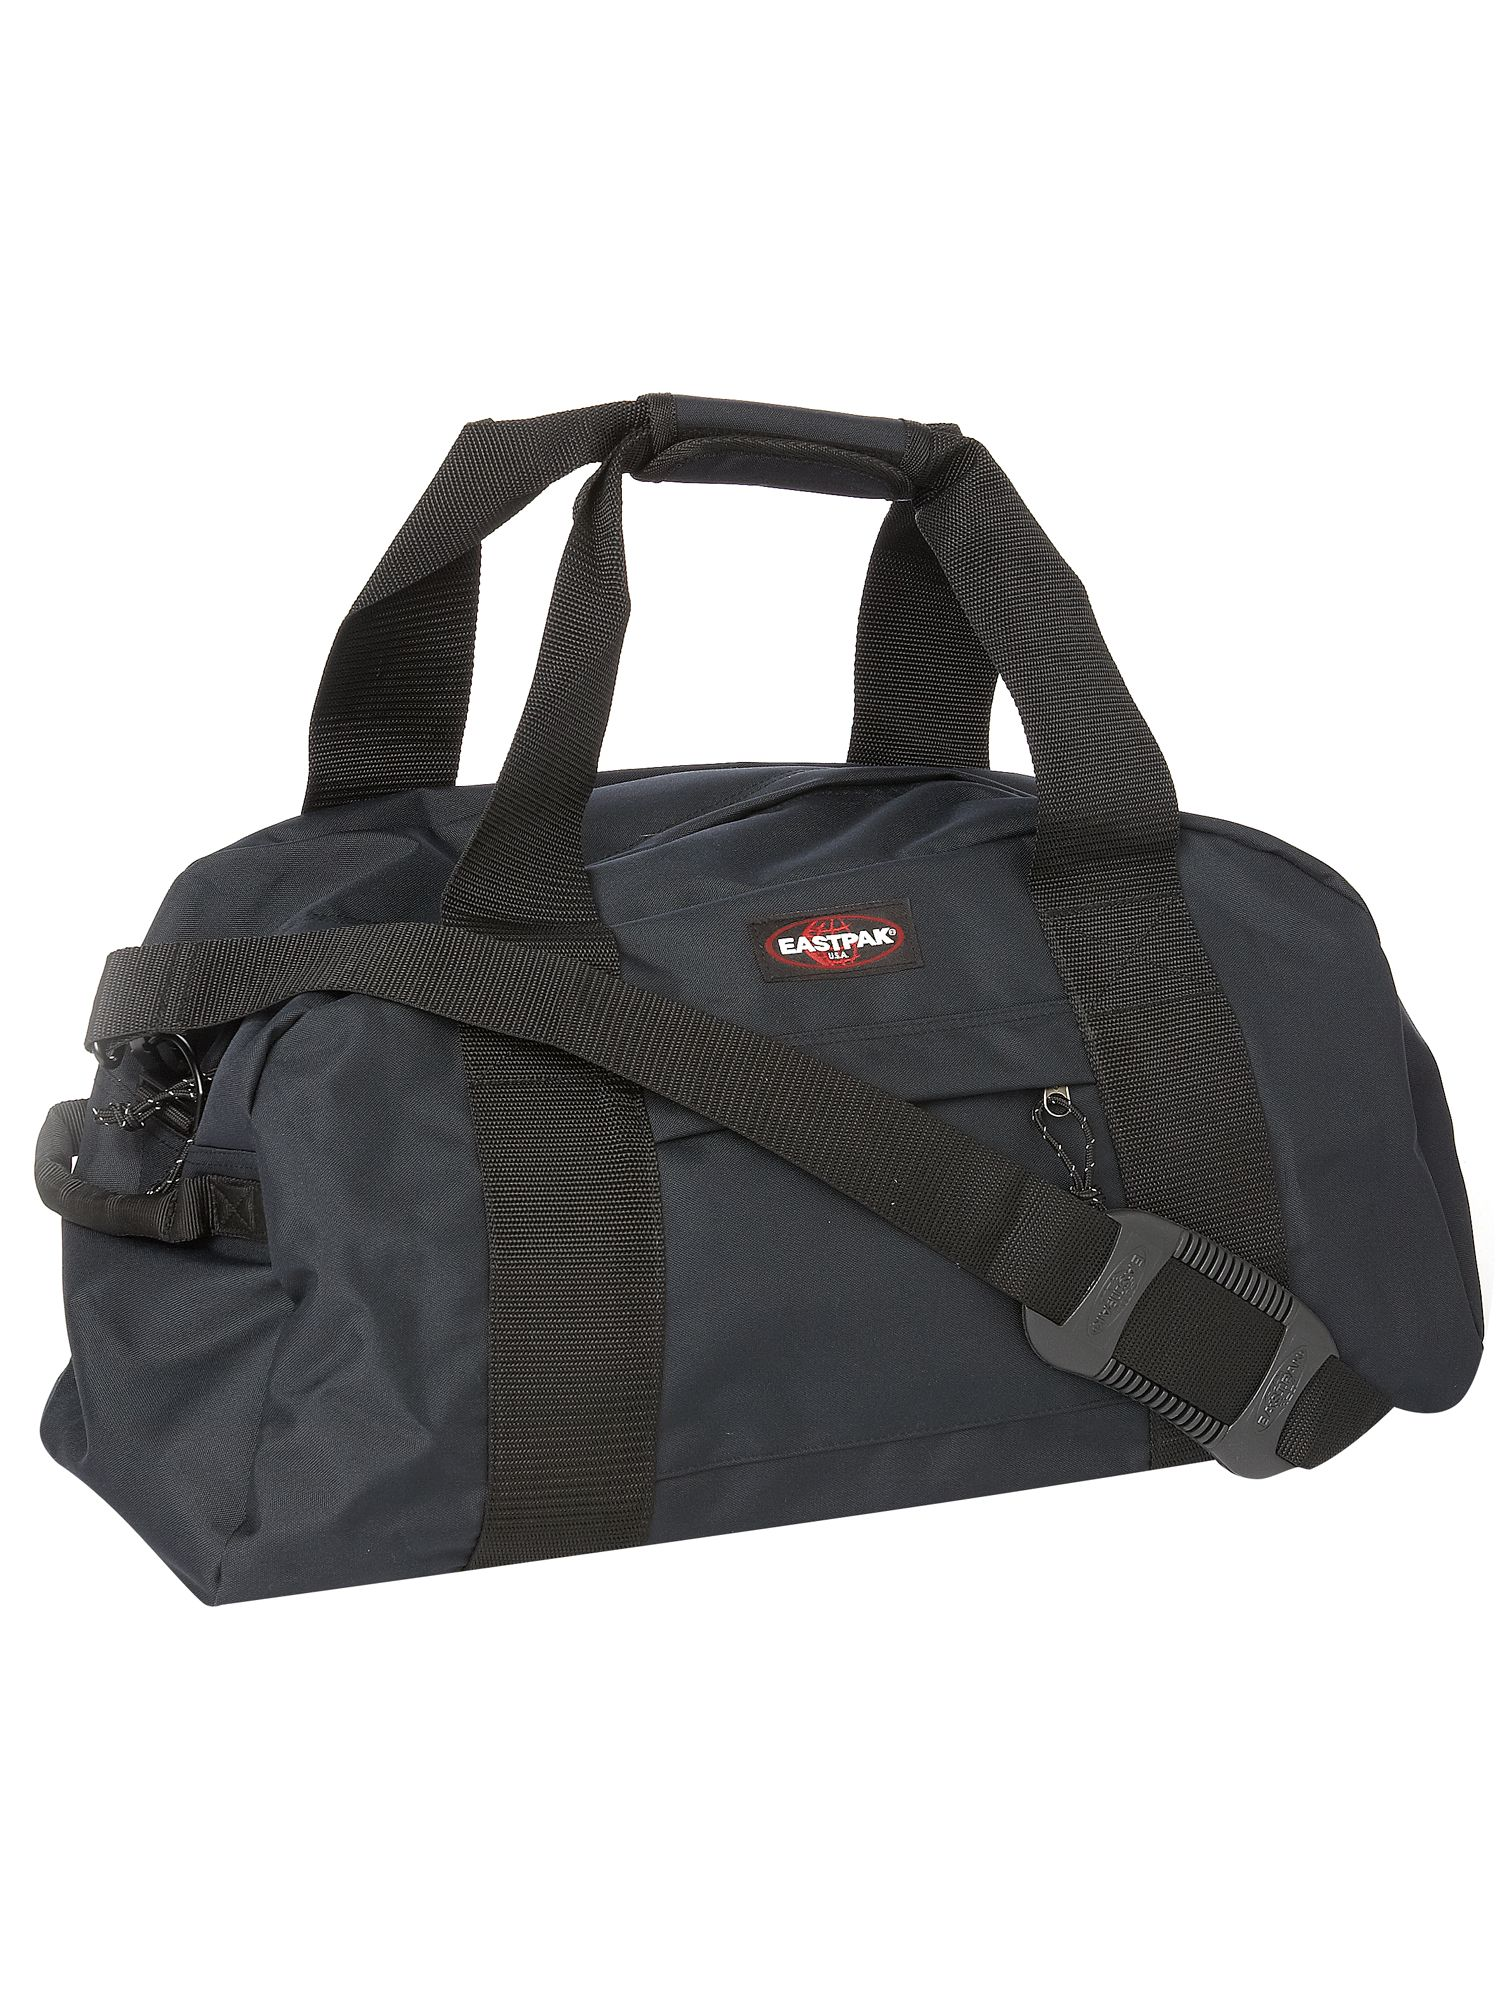 Station Small Duffle